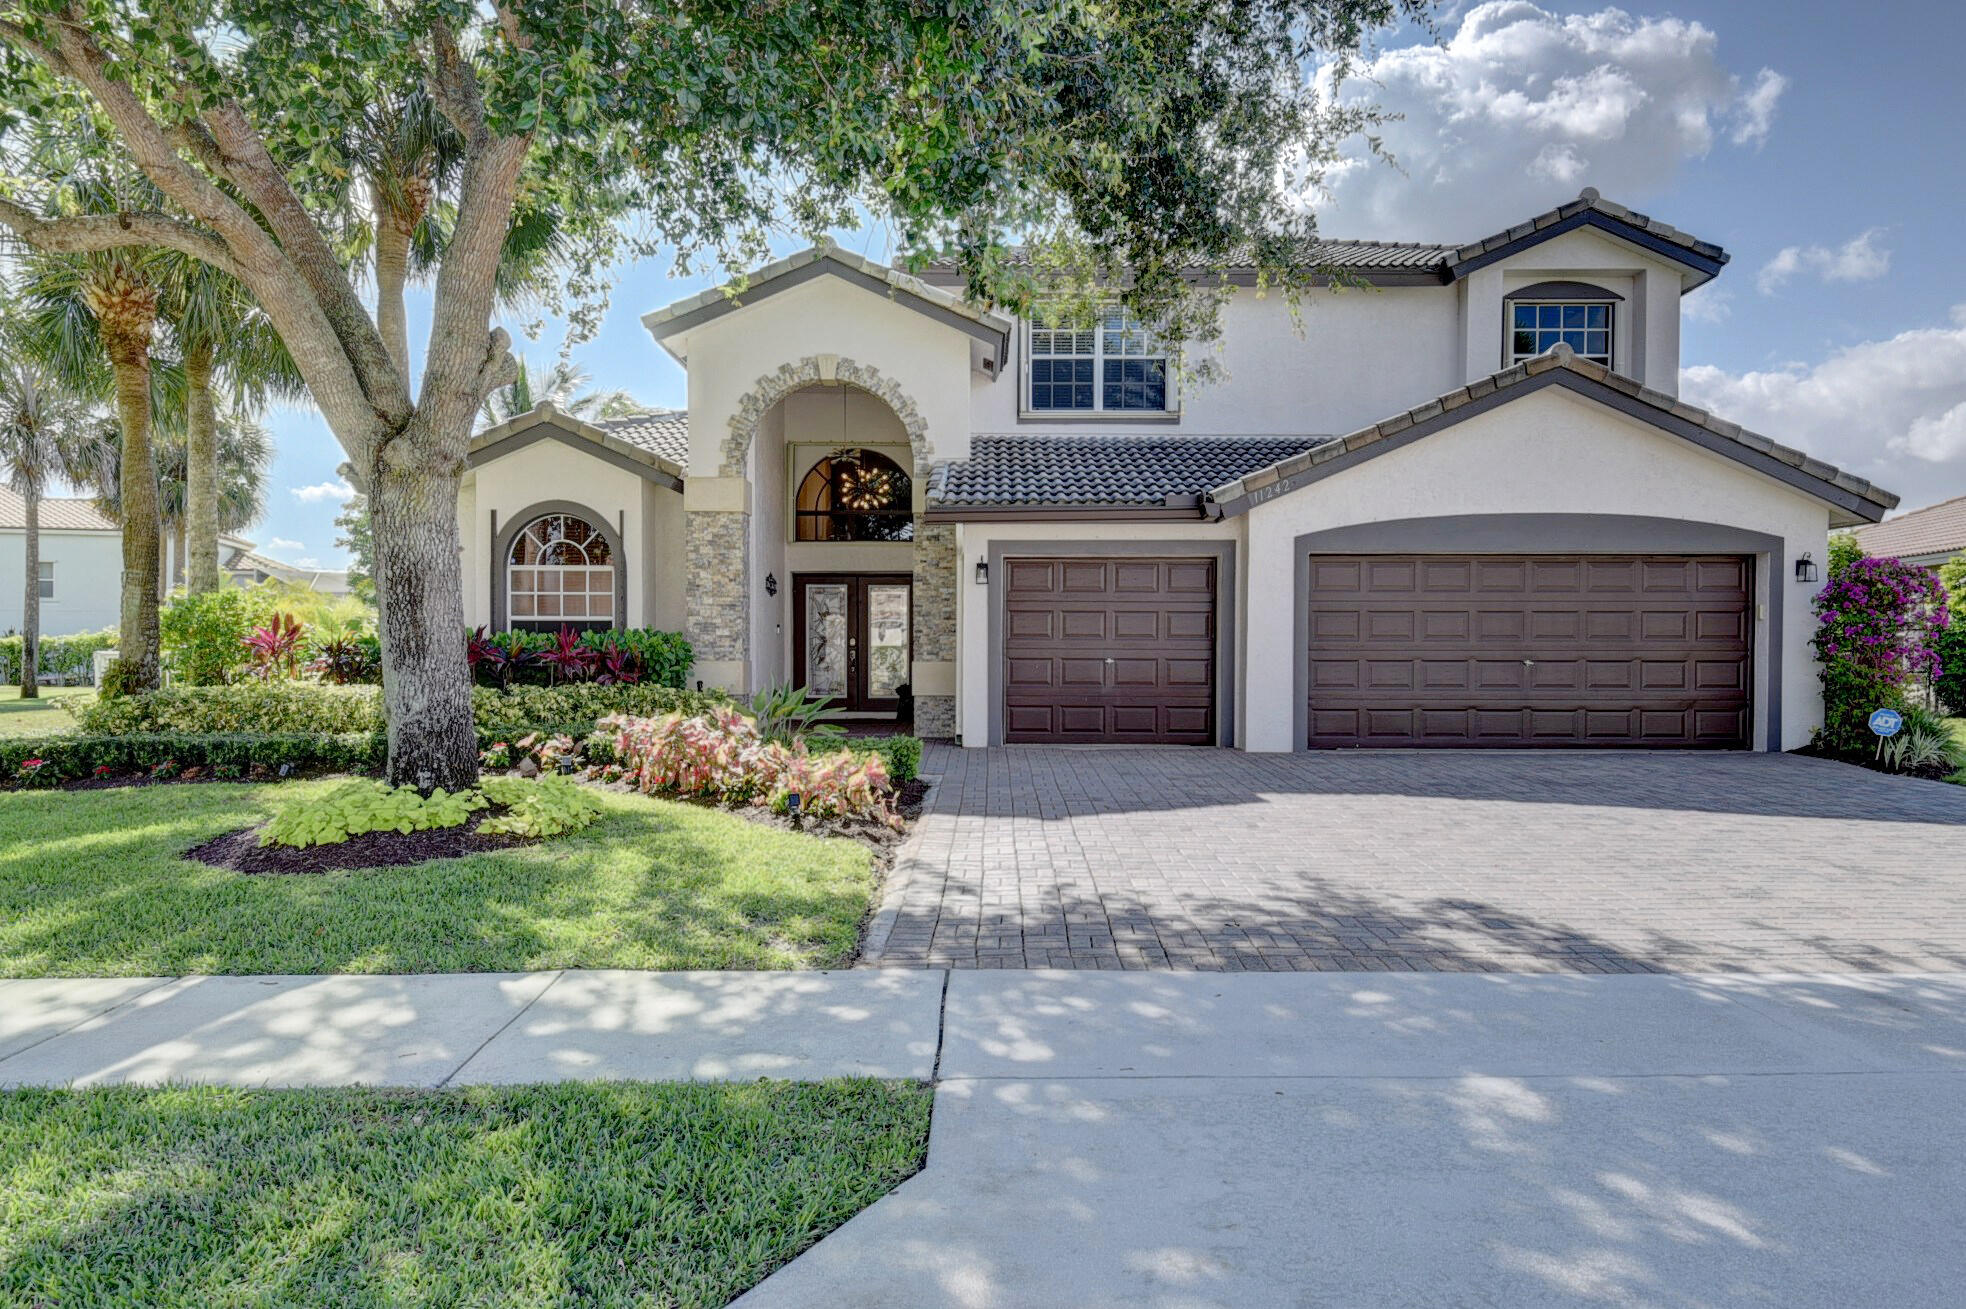 11242  Edgewater Circle  For Sale 10718547, FL